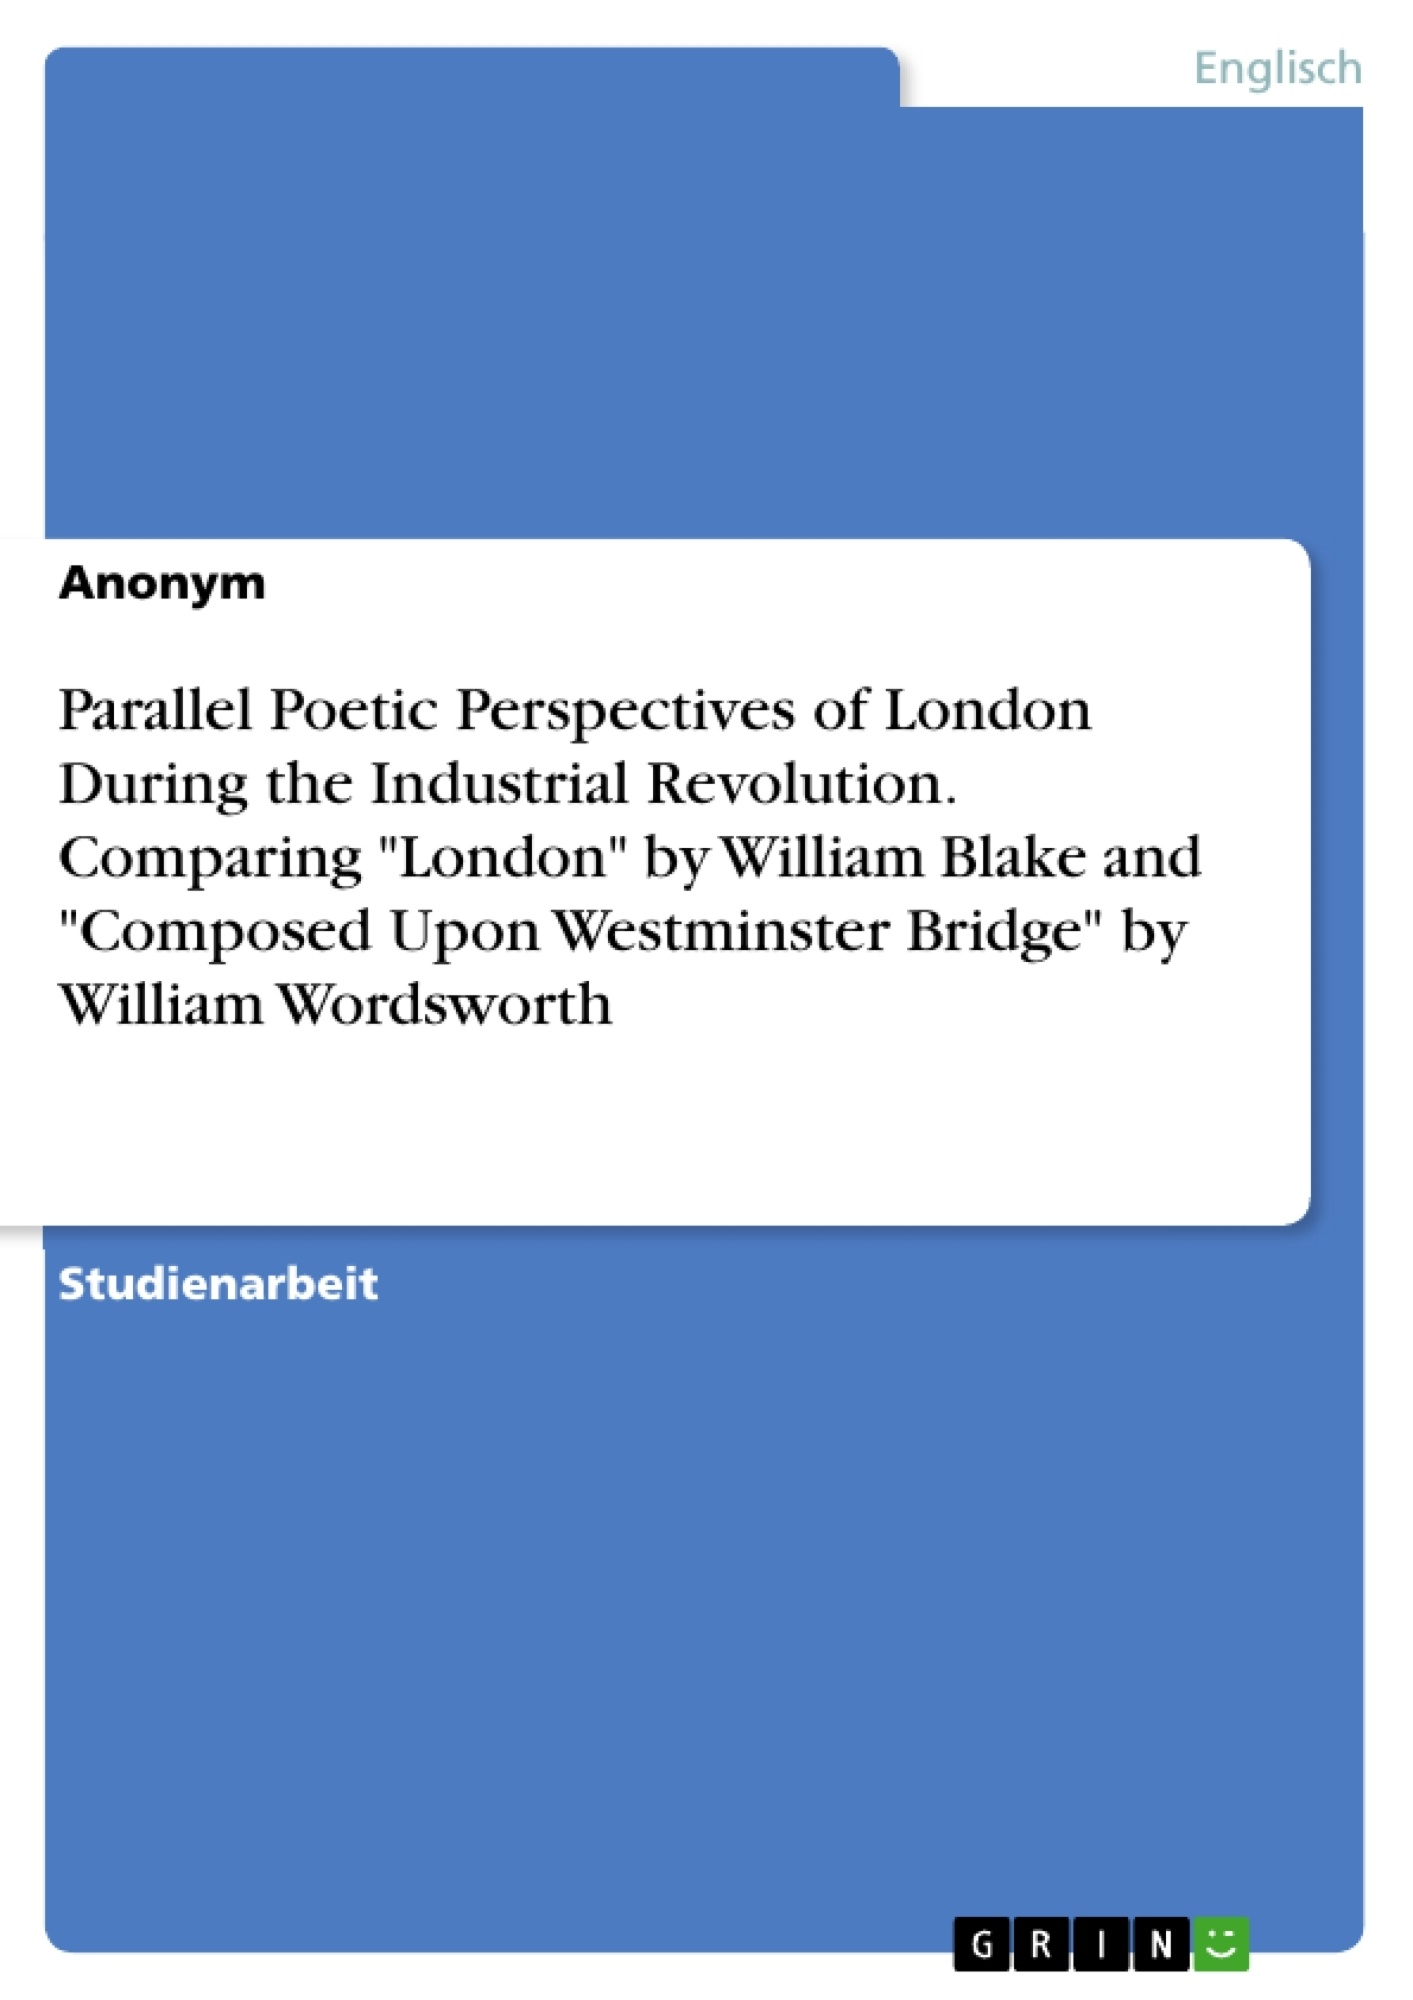 """Titel: Parallel Poetic Perspectives of London During the Industrial Revolution. Comparing """"London"""" by William Blake and """"Composed Upon Westminster Bridge"""" by William Wordsworth"""